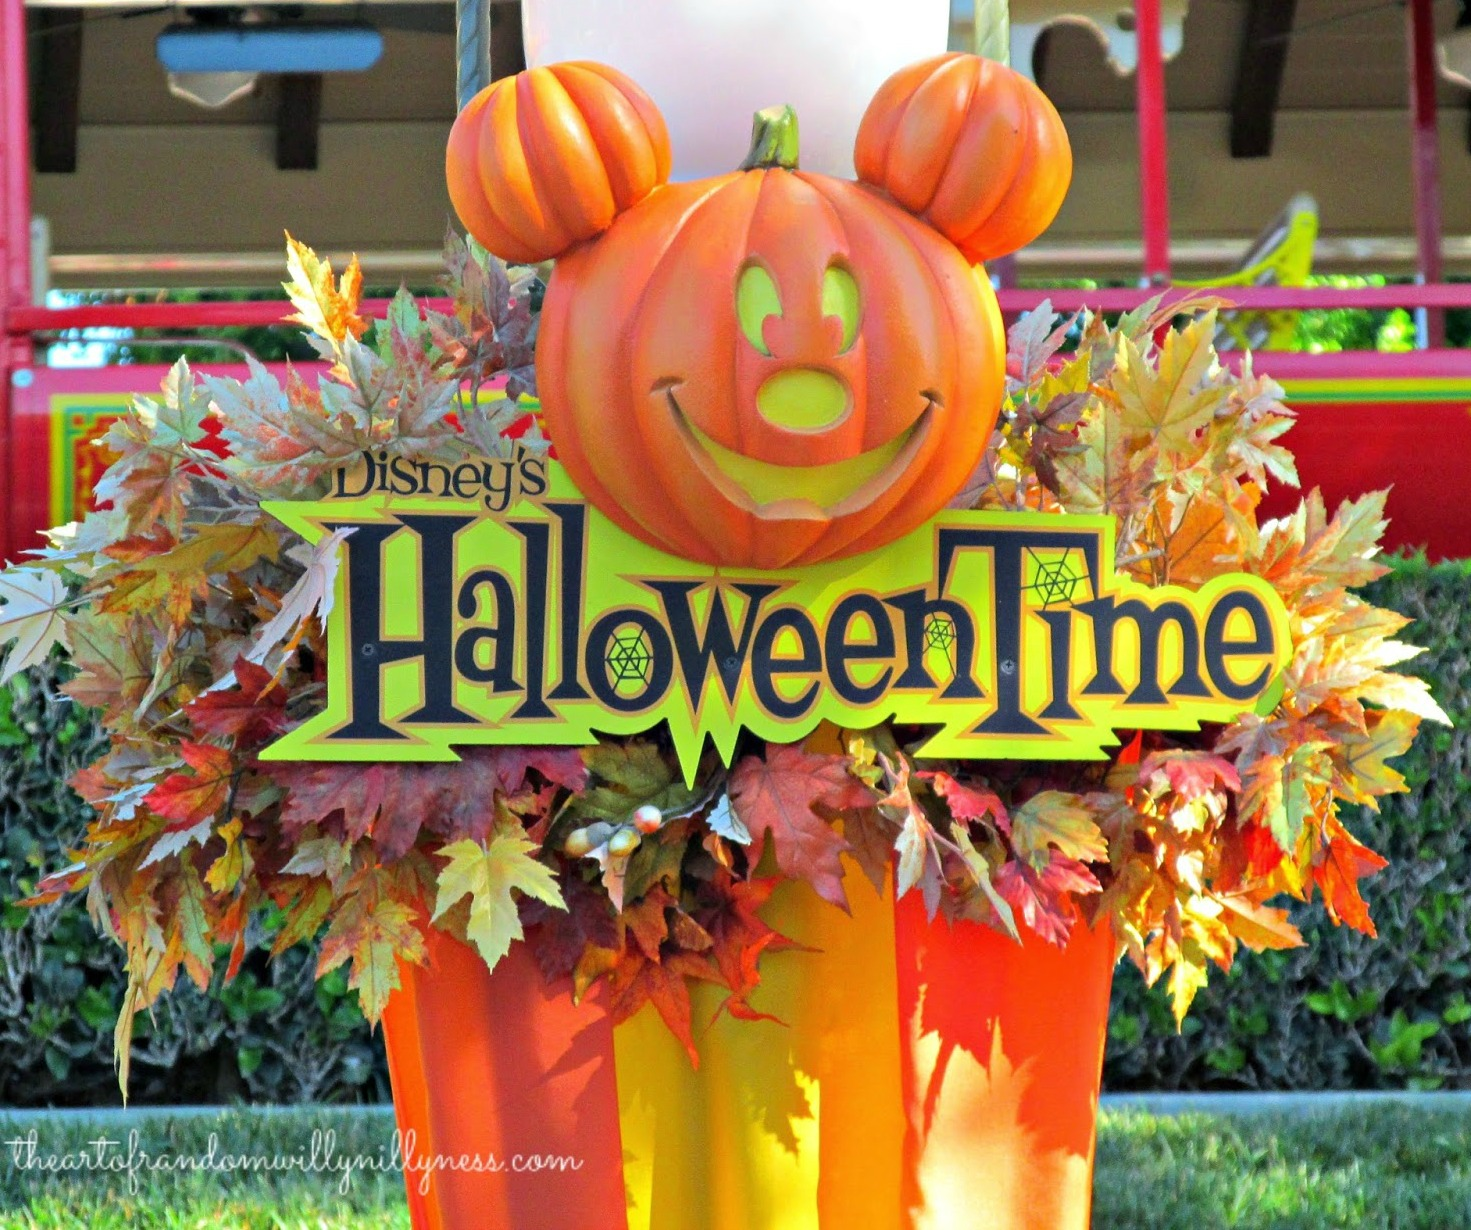 the art of random willy-nillyness: halloween time at disneyland and